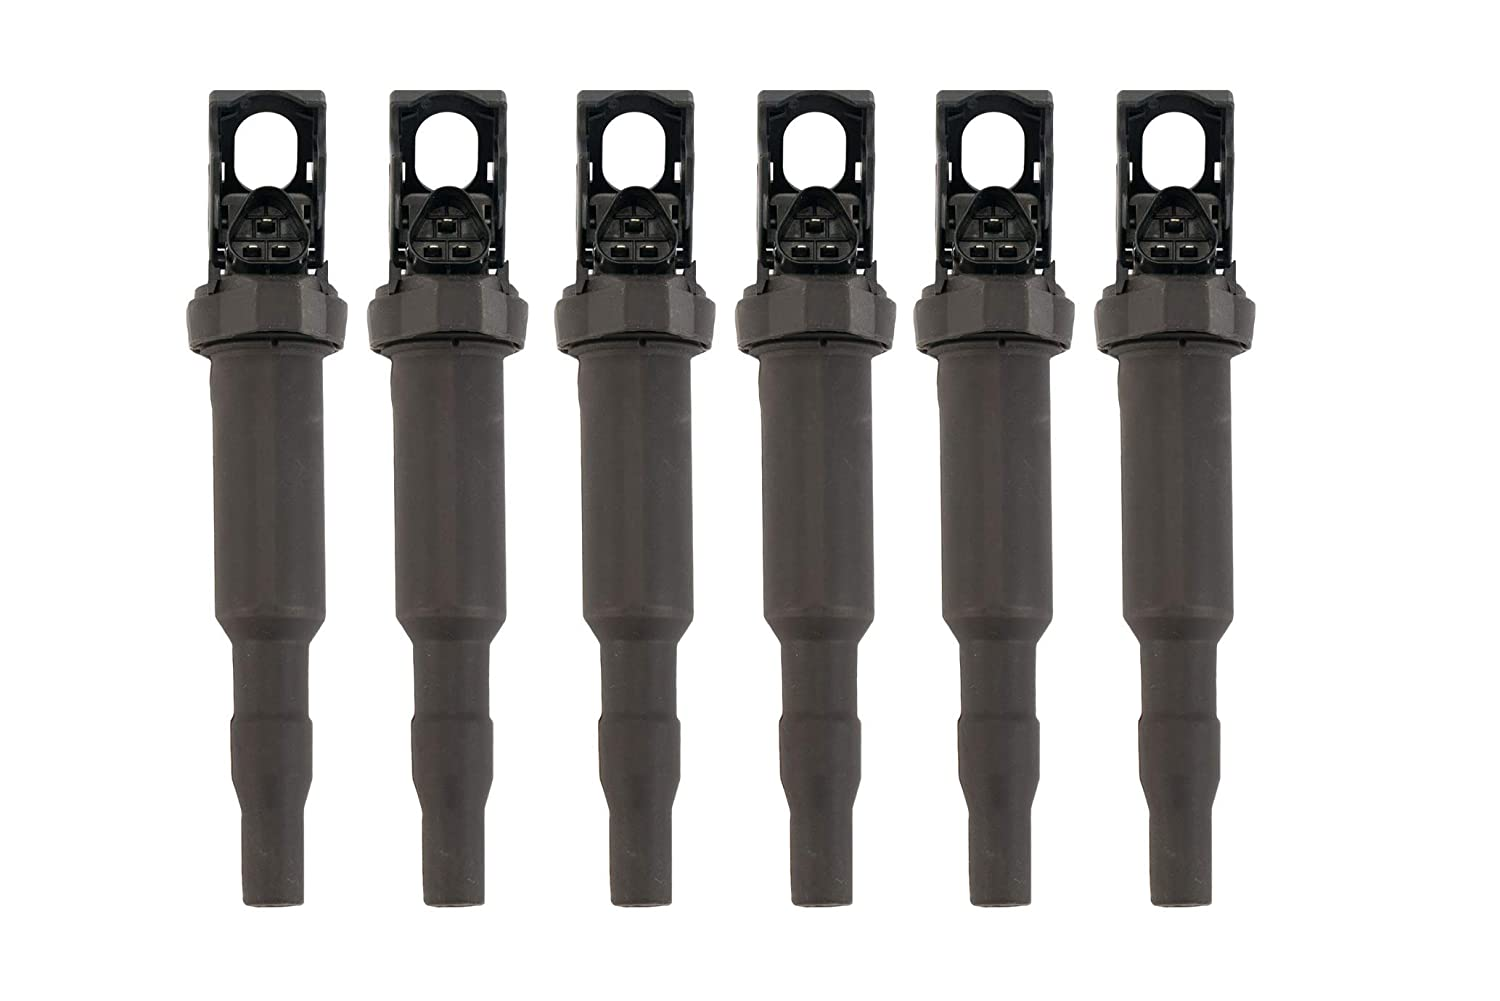 Ignition Coil Pack Set of 6 - Replacement for Bosch 0221504470, 12138616153, 12138657273, 12137594937, 12137562744 - Fits BMW 325i, 335i, 328i, 525i, 530i, 330i, 650i, X3, X5, M3 and more